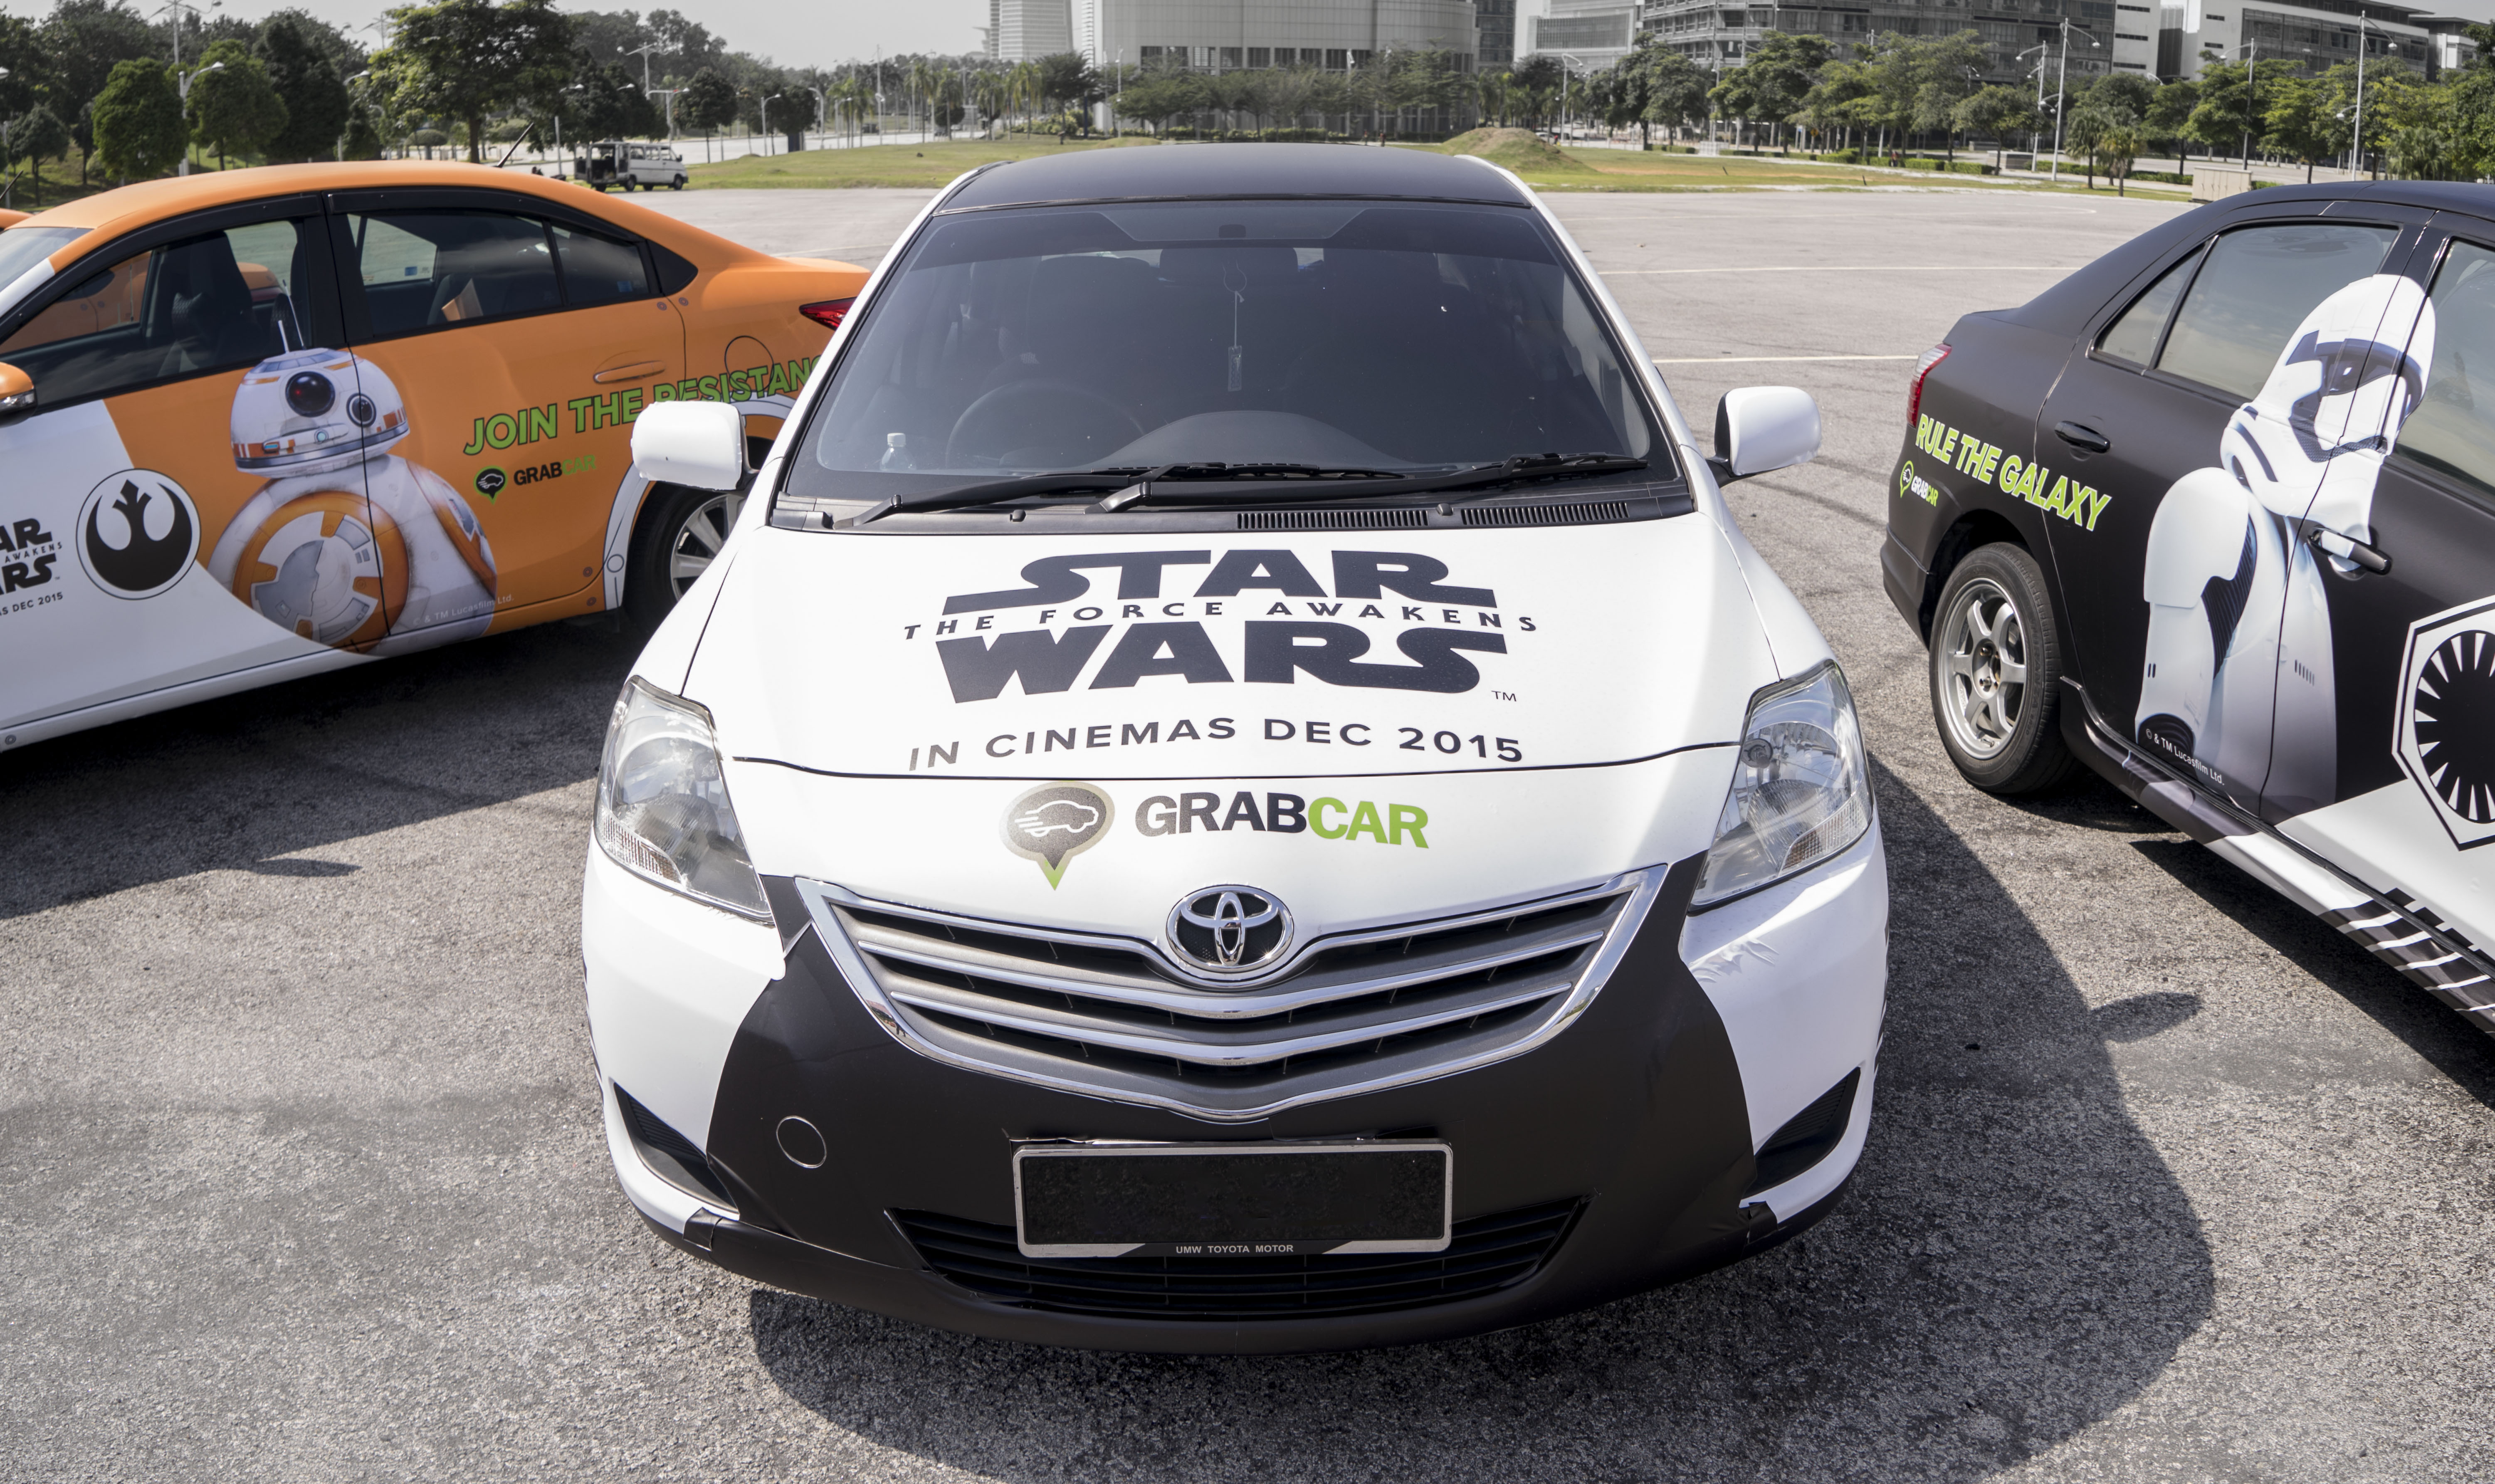 Car Wars: GrabCar Users Can Ride In Style With Star Wars-Themed Cars